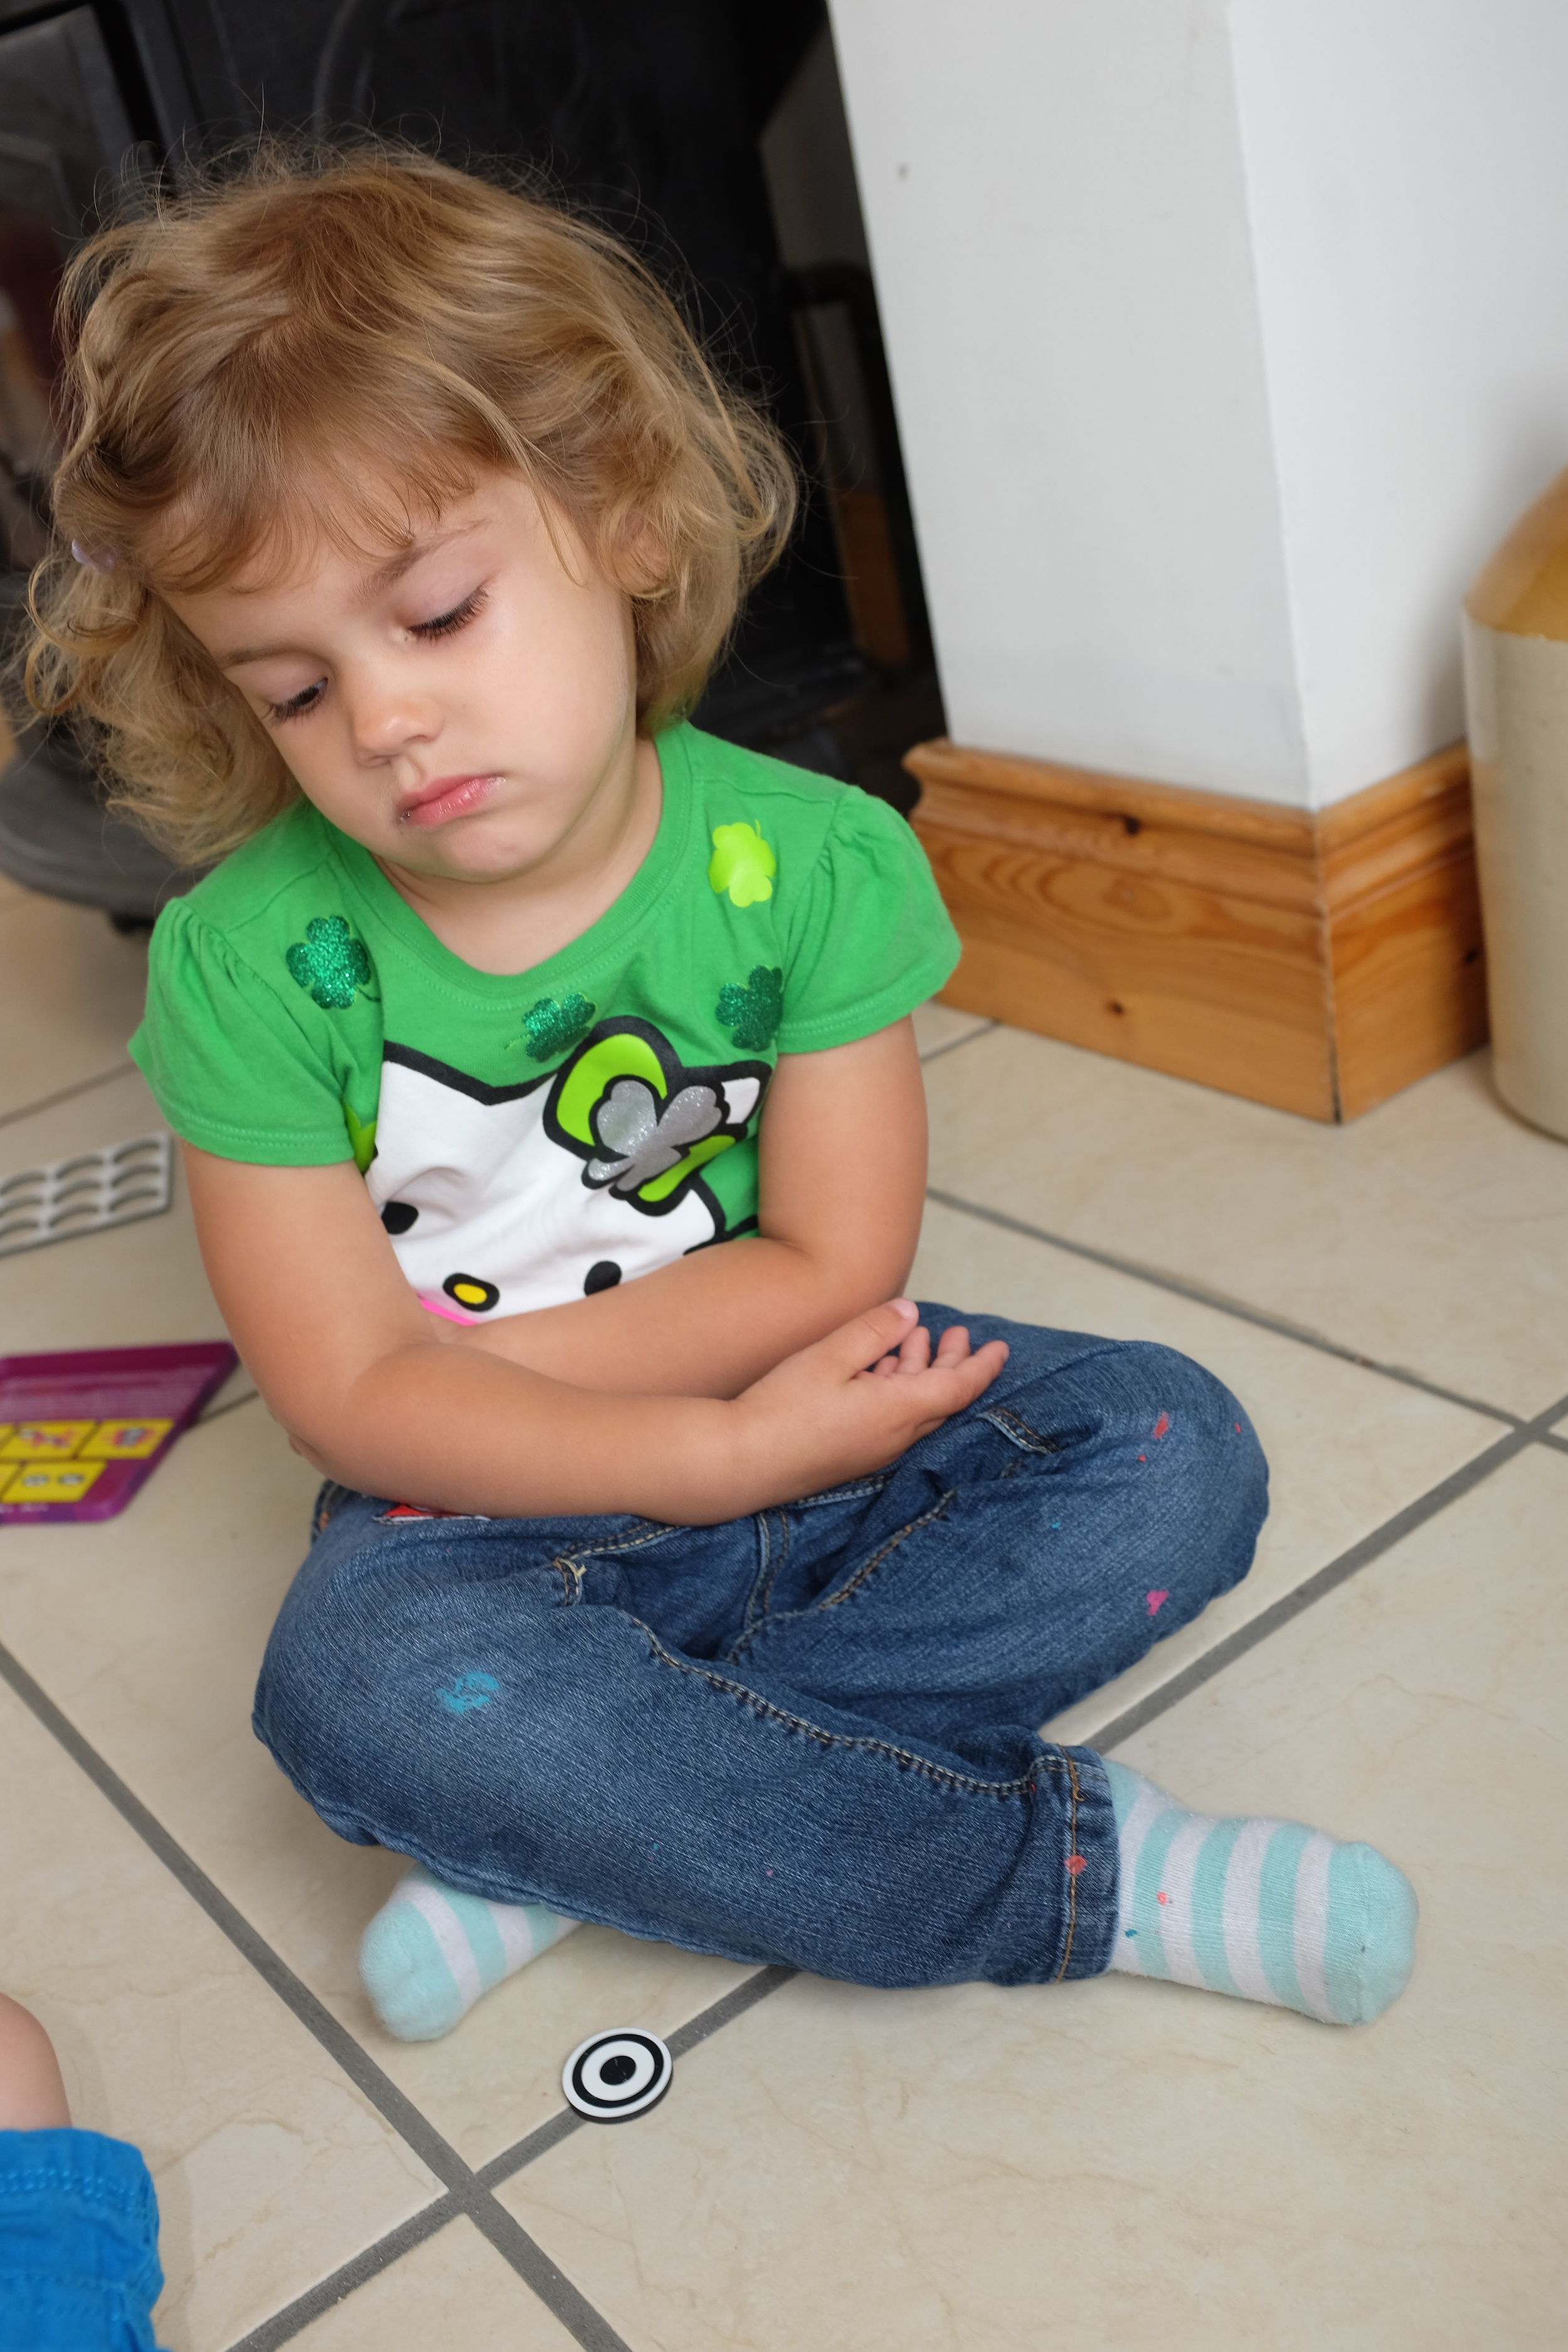 Losing is no fun especially for a 2.5 year old :(